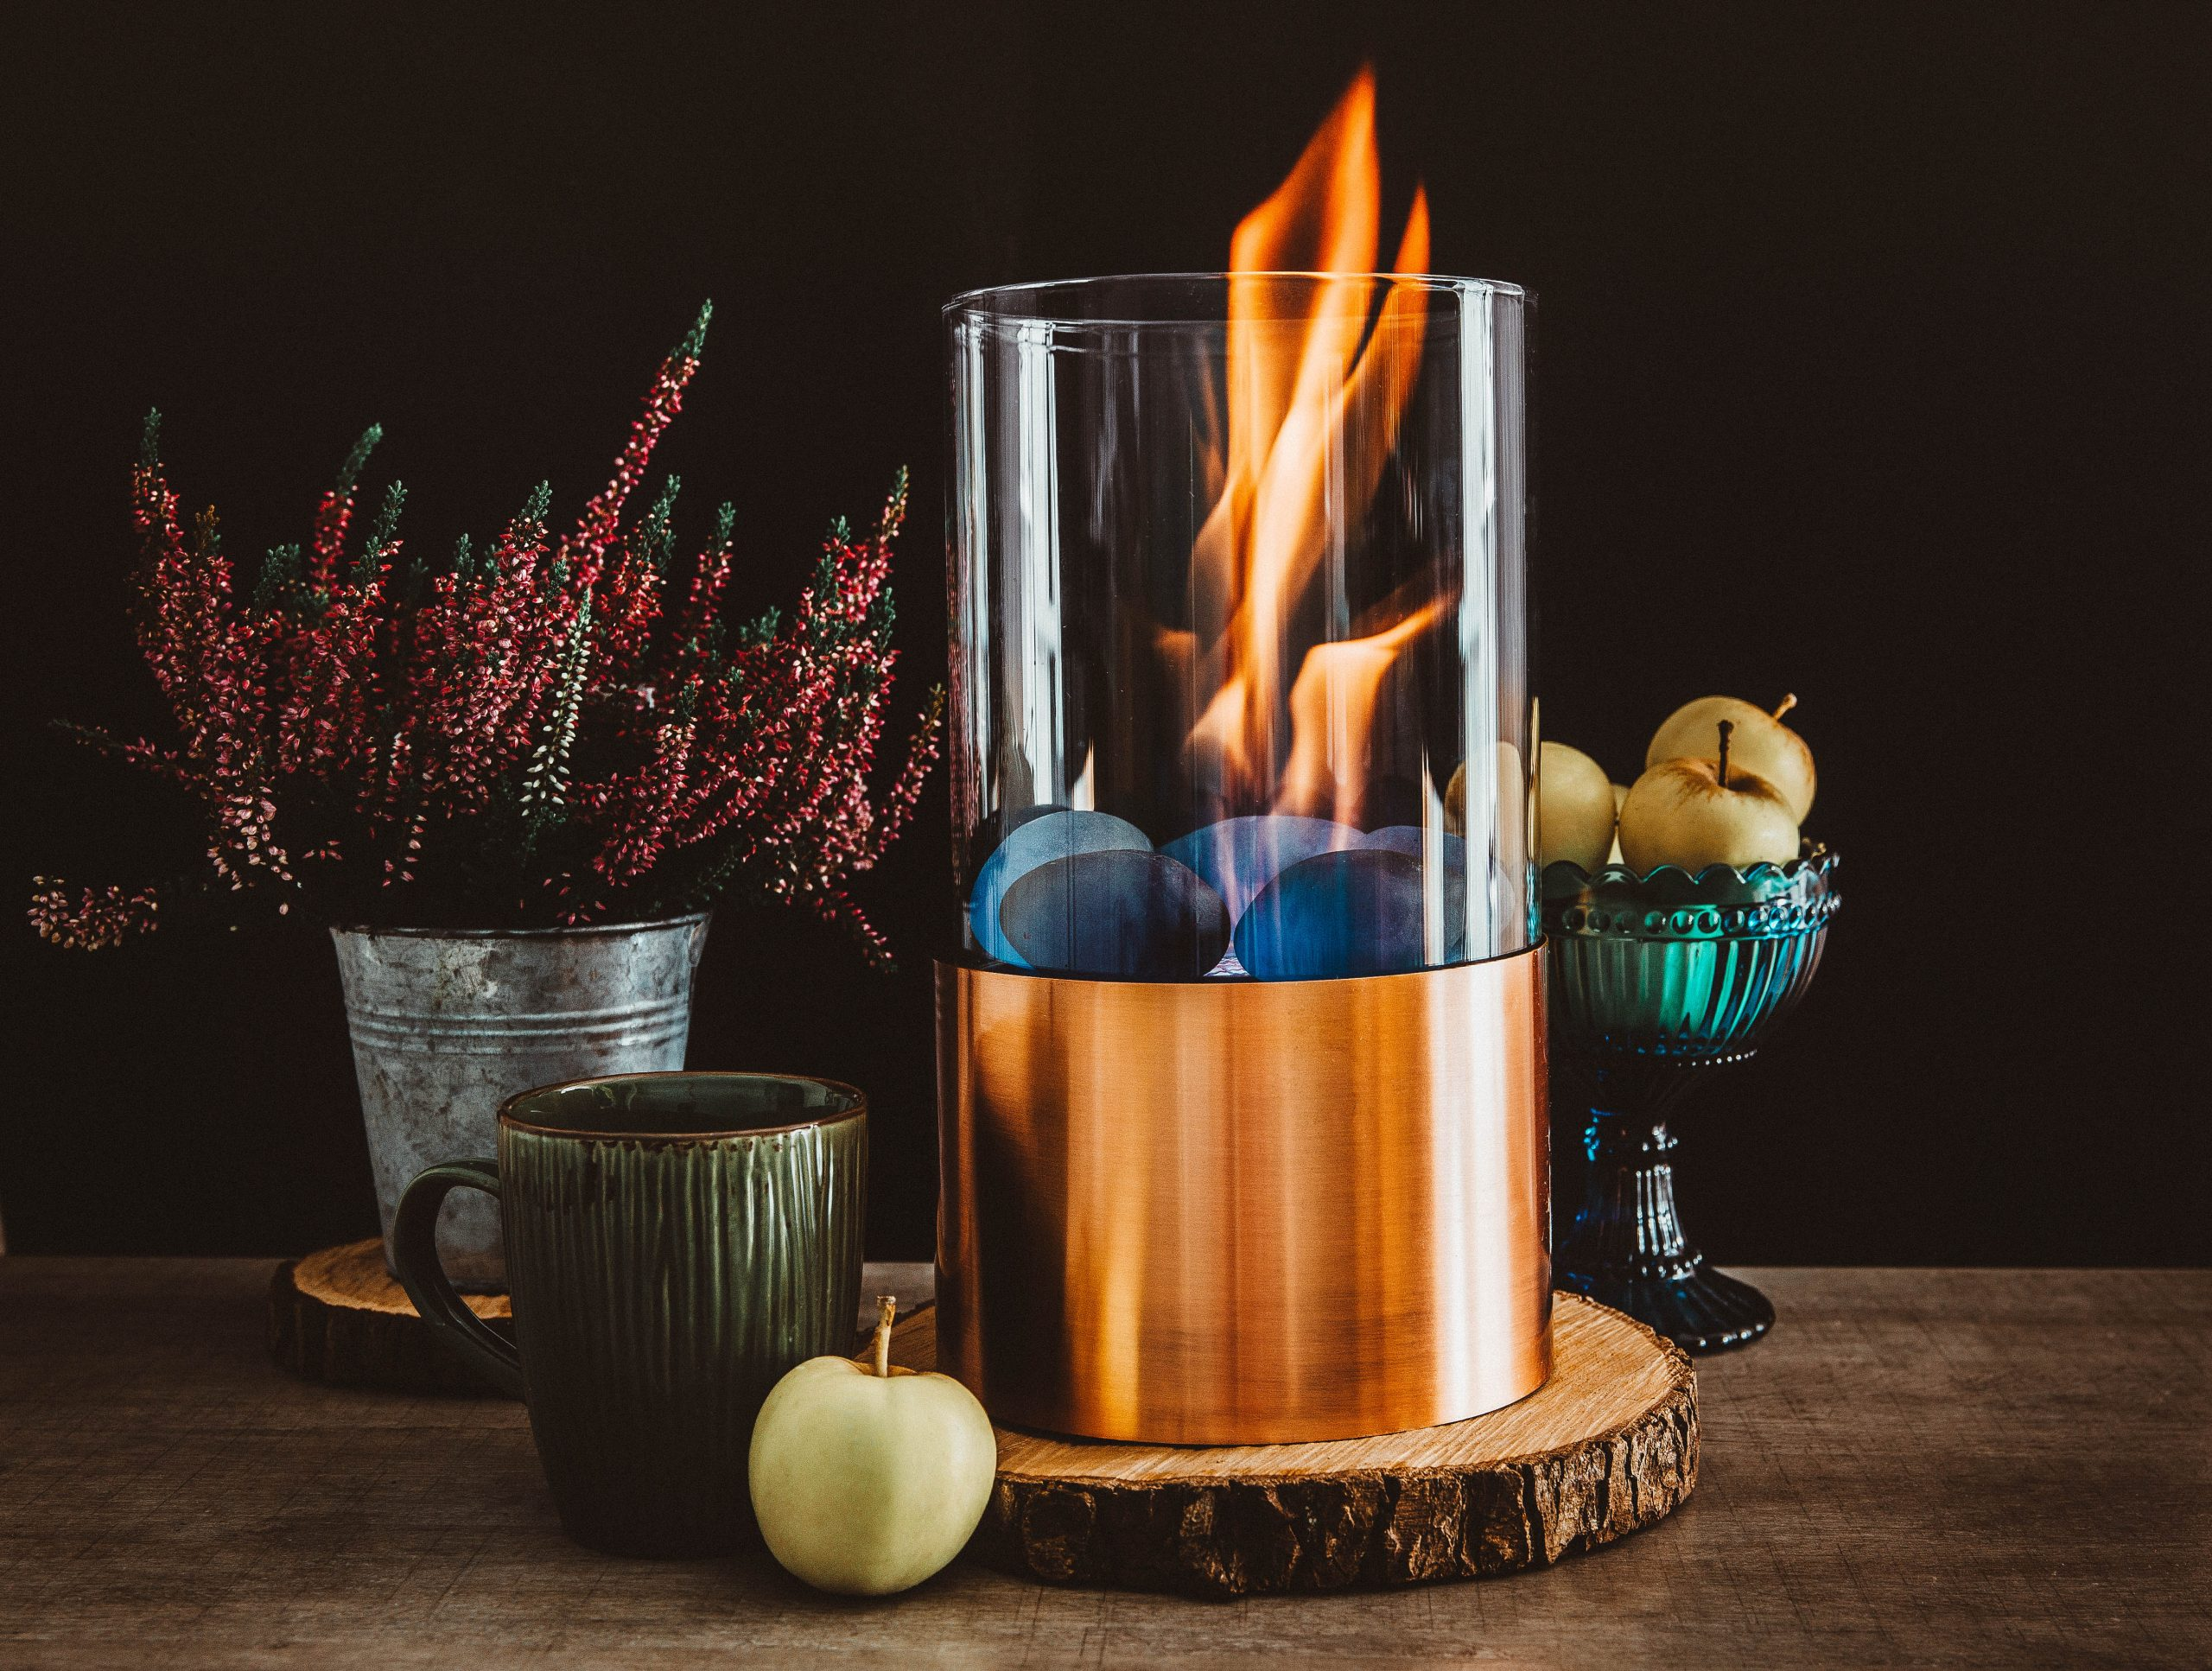 You can see a bioethanol fueled portable fireplace burning at home.